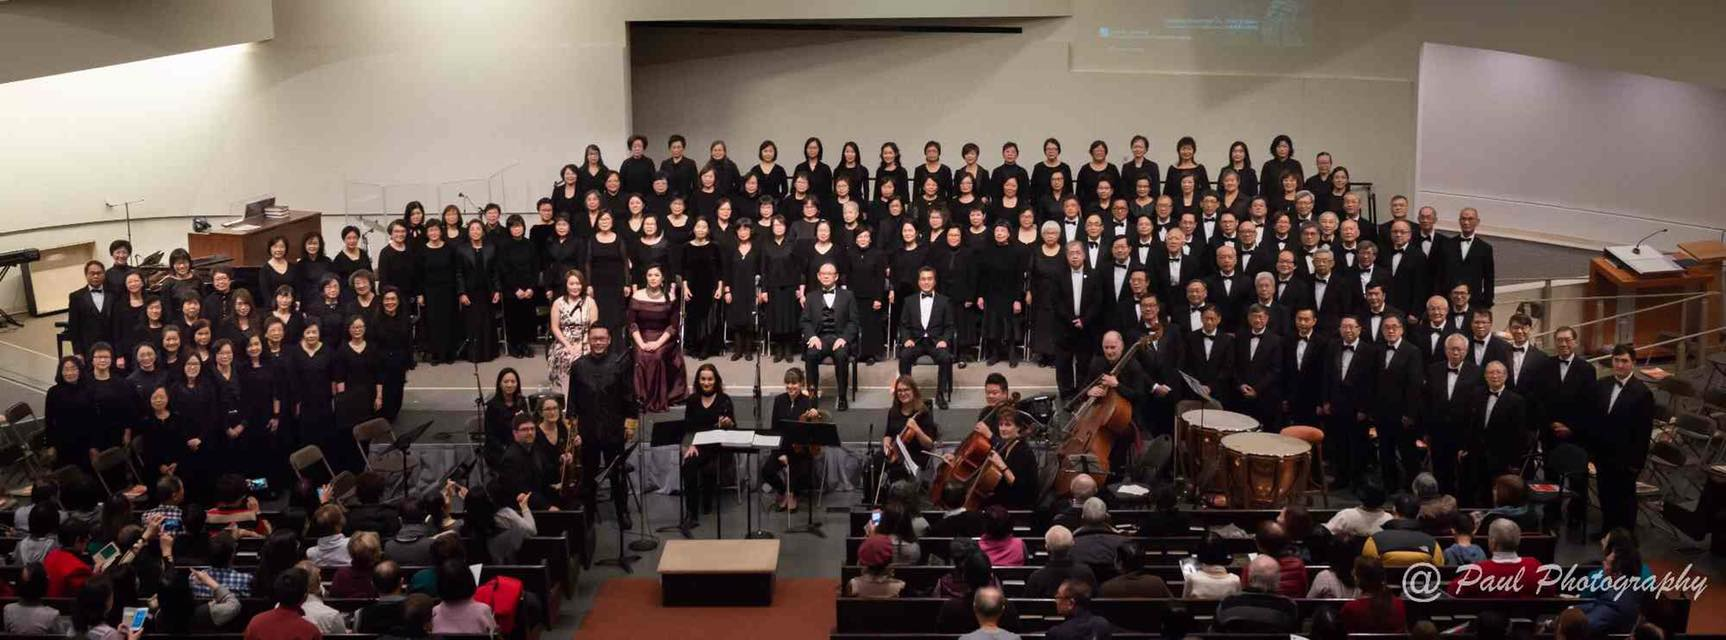 Association of Toronto Chinese Evangelical Church Musicians